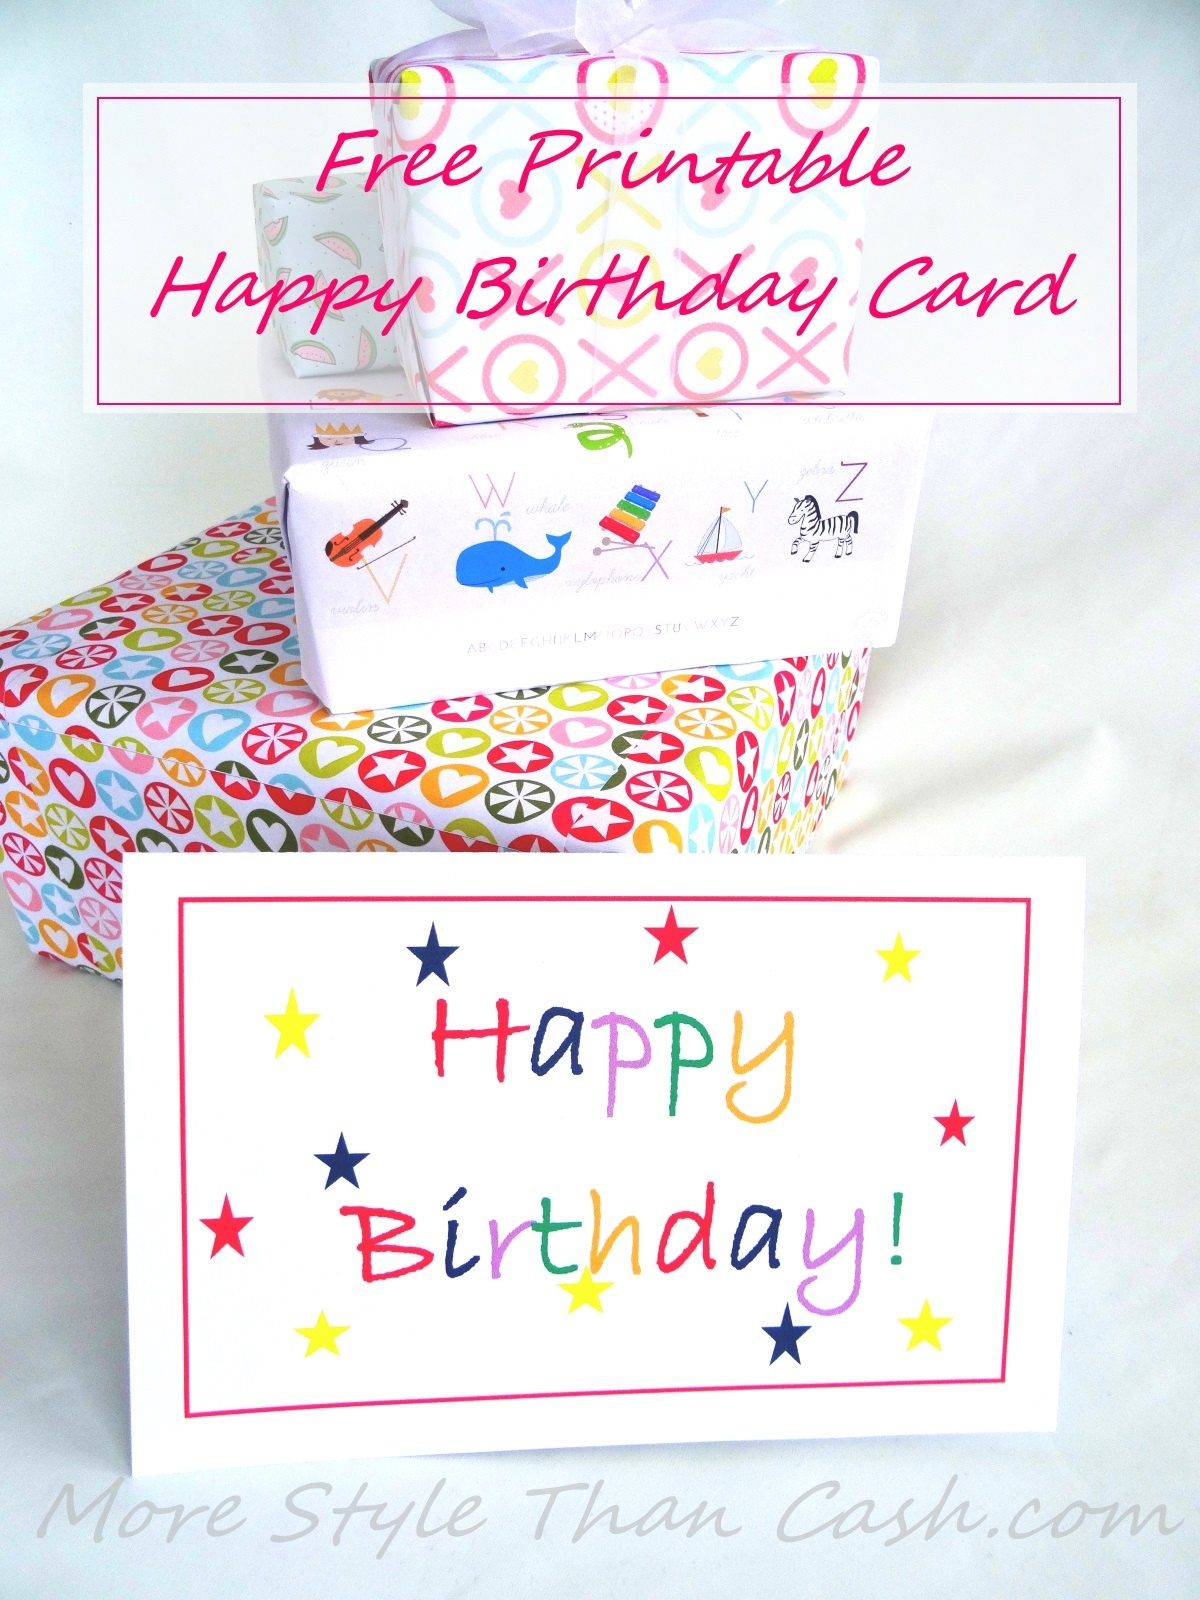 Free Printable Birthday Card - Free Printable Cards